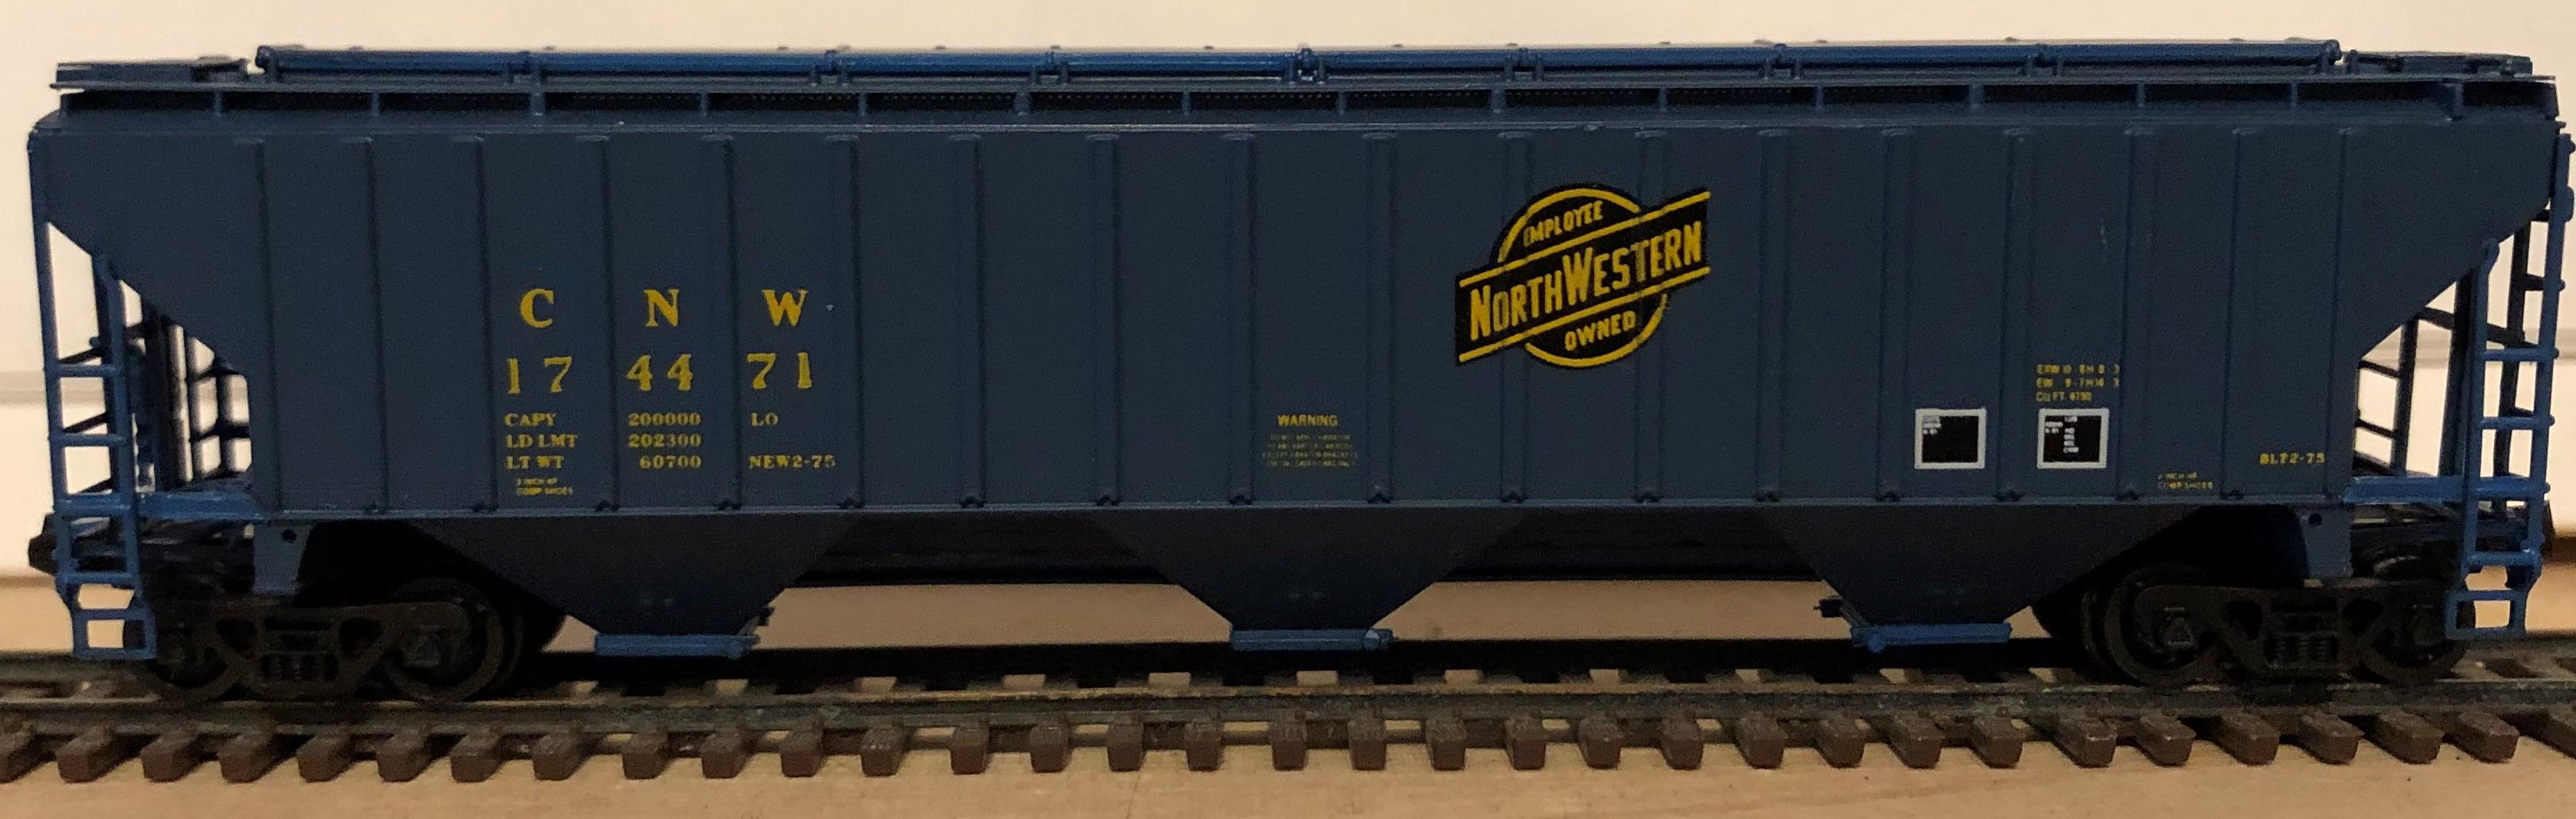 N Scale - Pacific Western Rail Systems - 1023C - Covered Hopper, 3-Bay, Thrall 4750 - Chicago & North Western - 174471